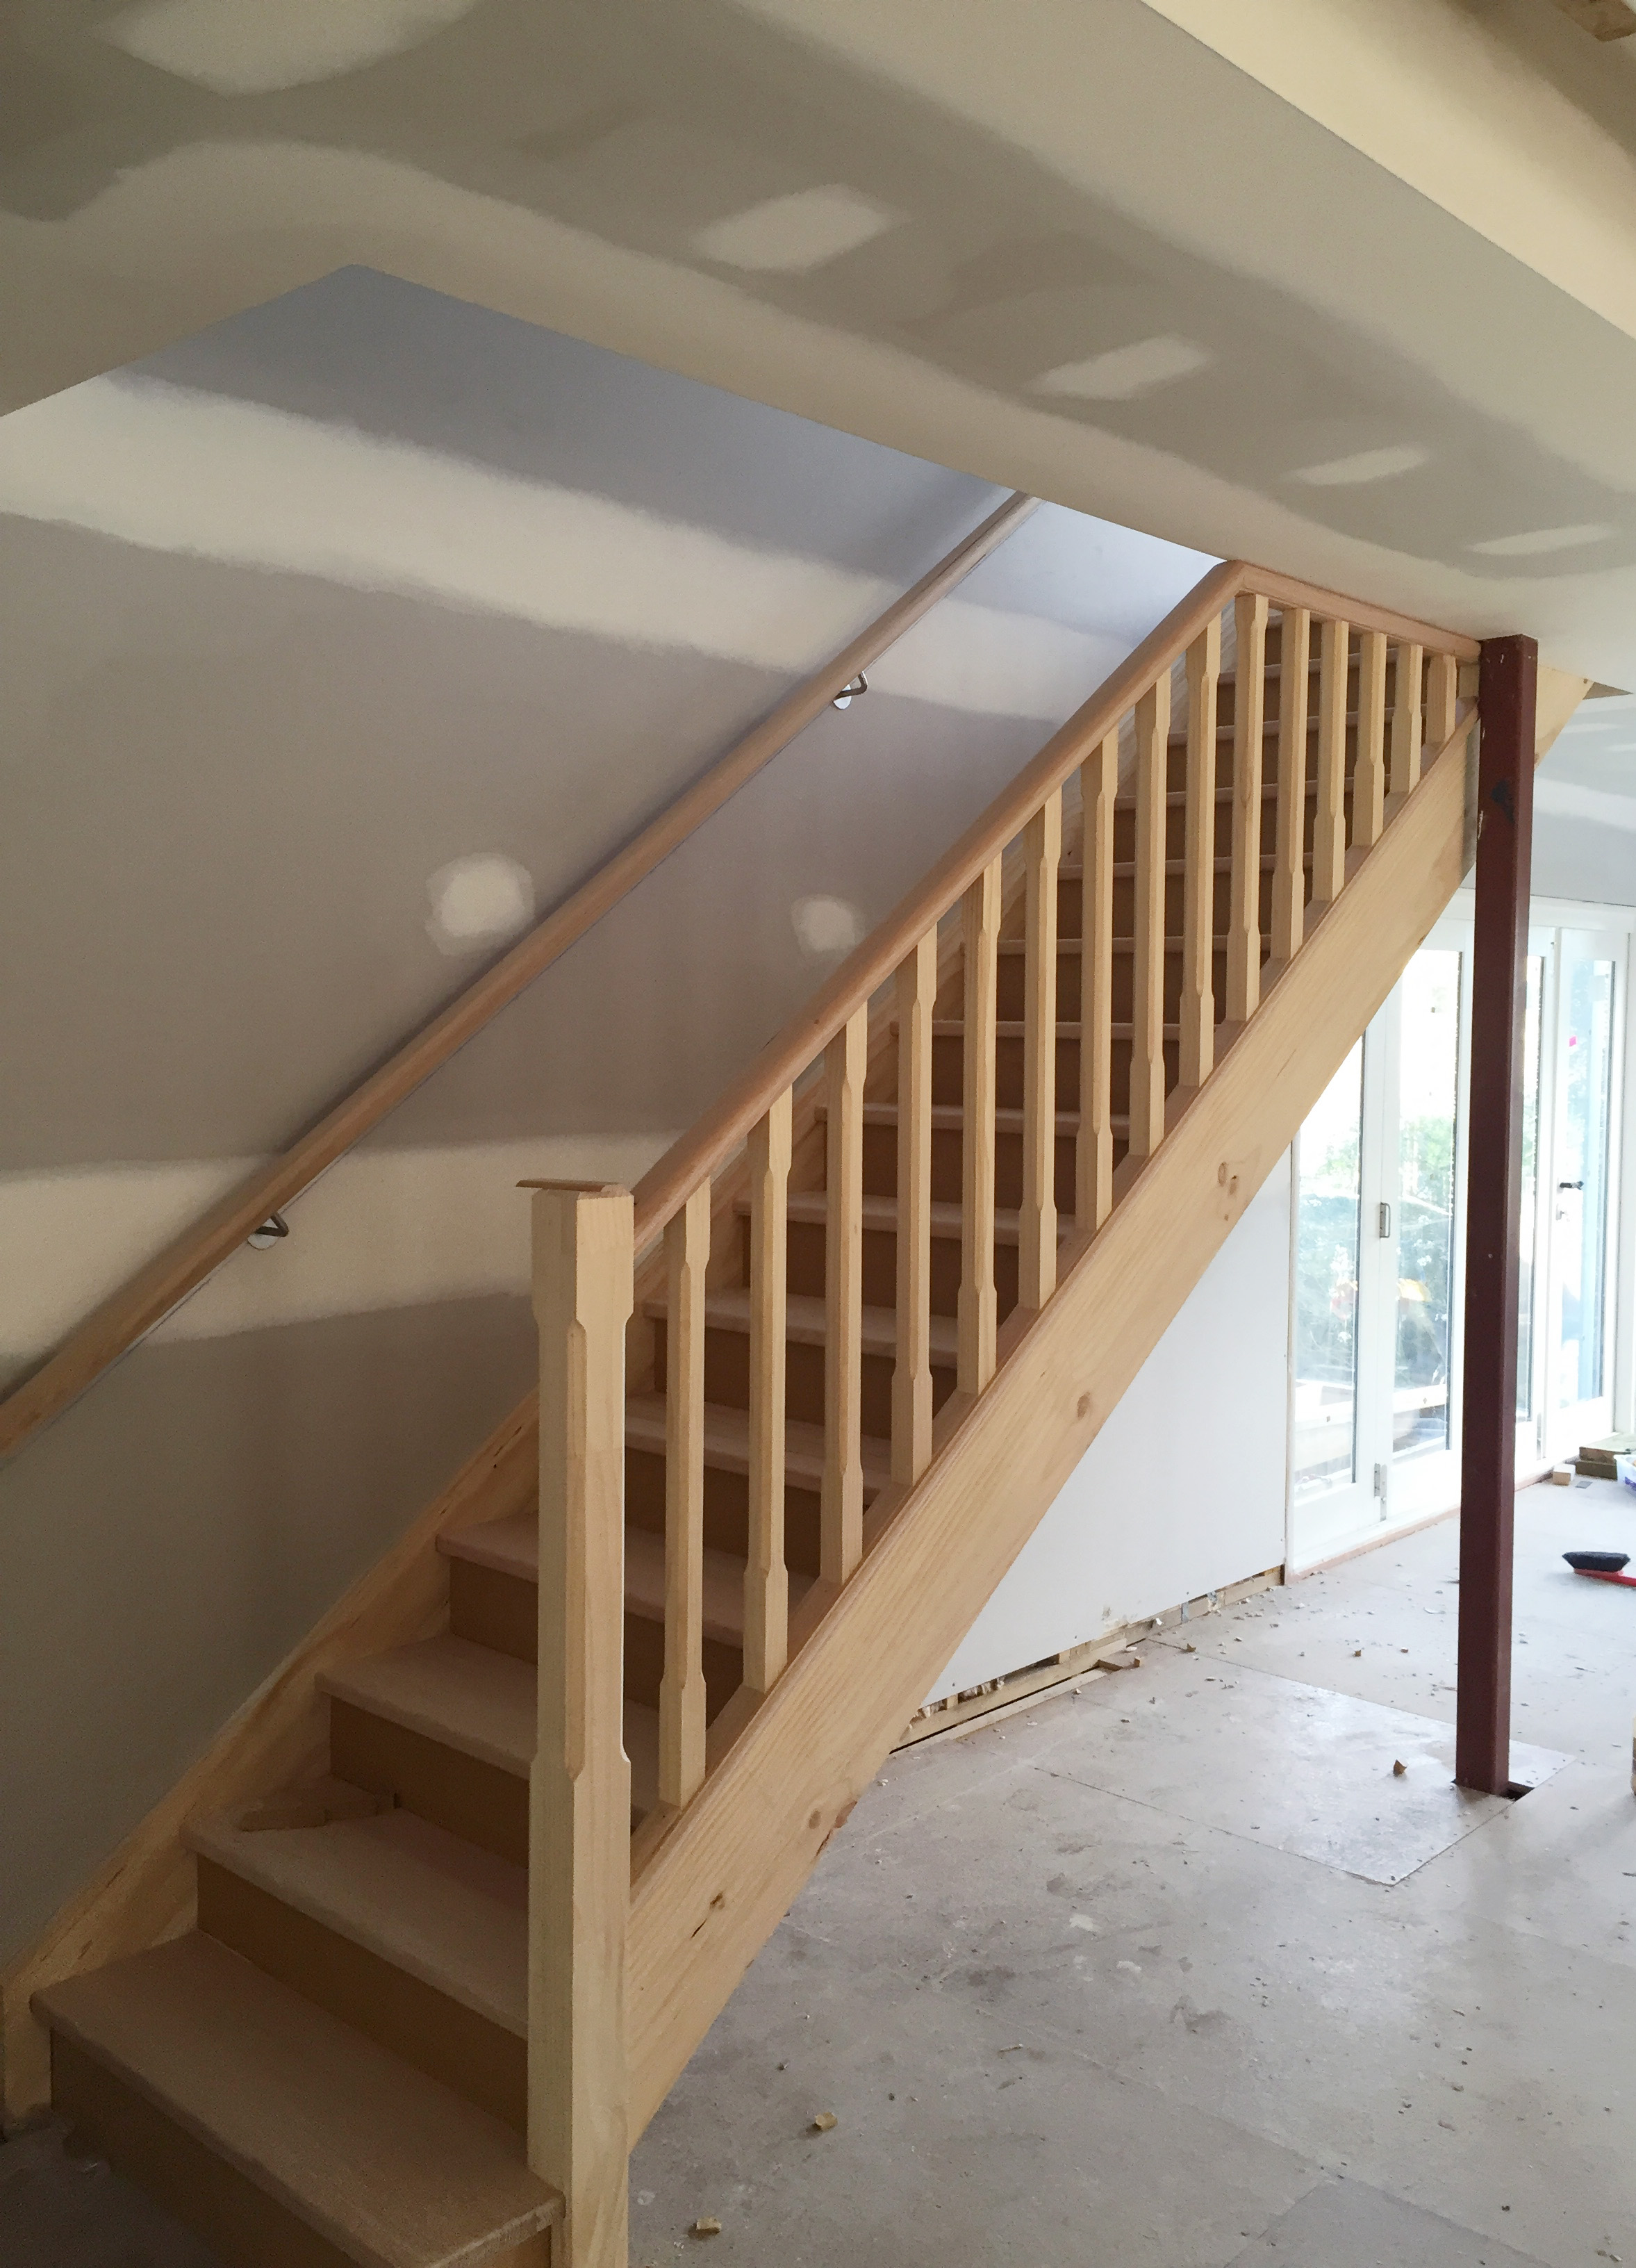 New stairwell in home renovation - The Organised You